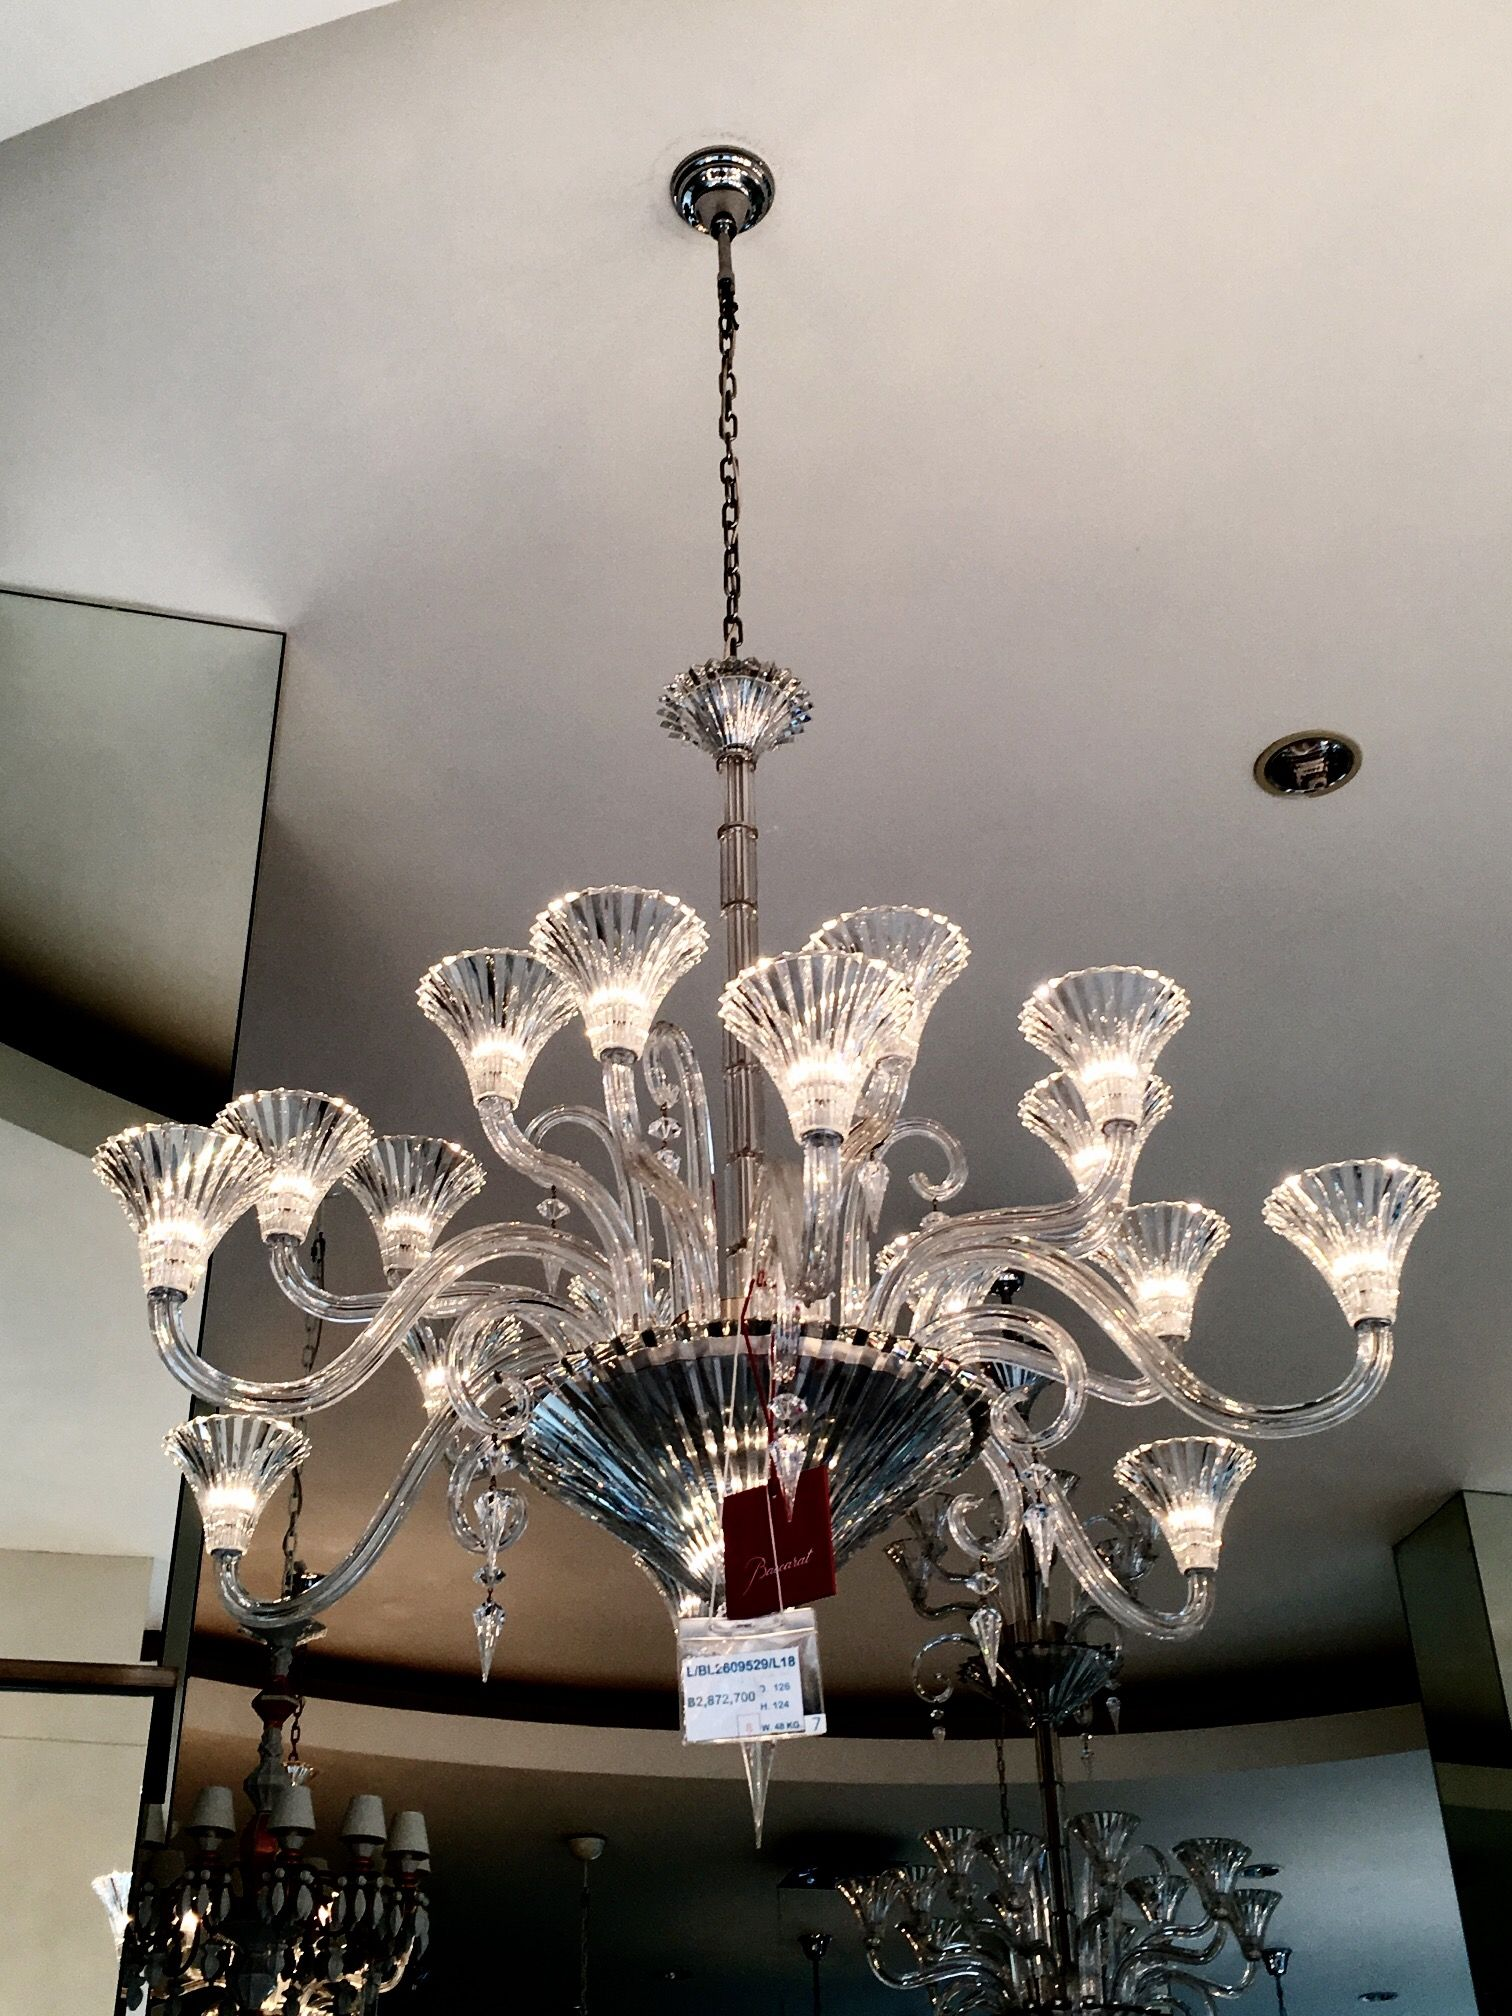 Baccarat crystal chandeliers Mille Nuits 18 lights | Baccarat ...